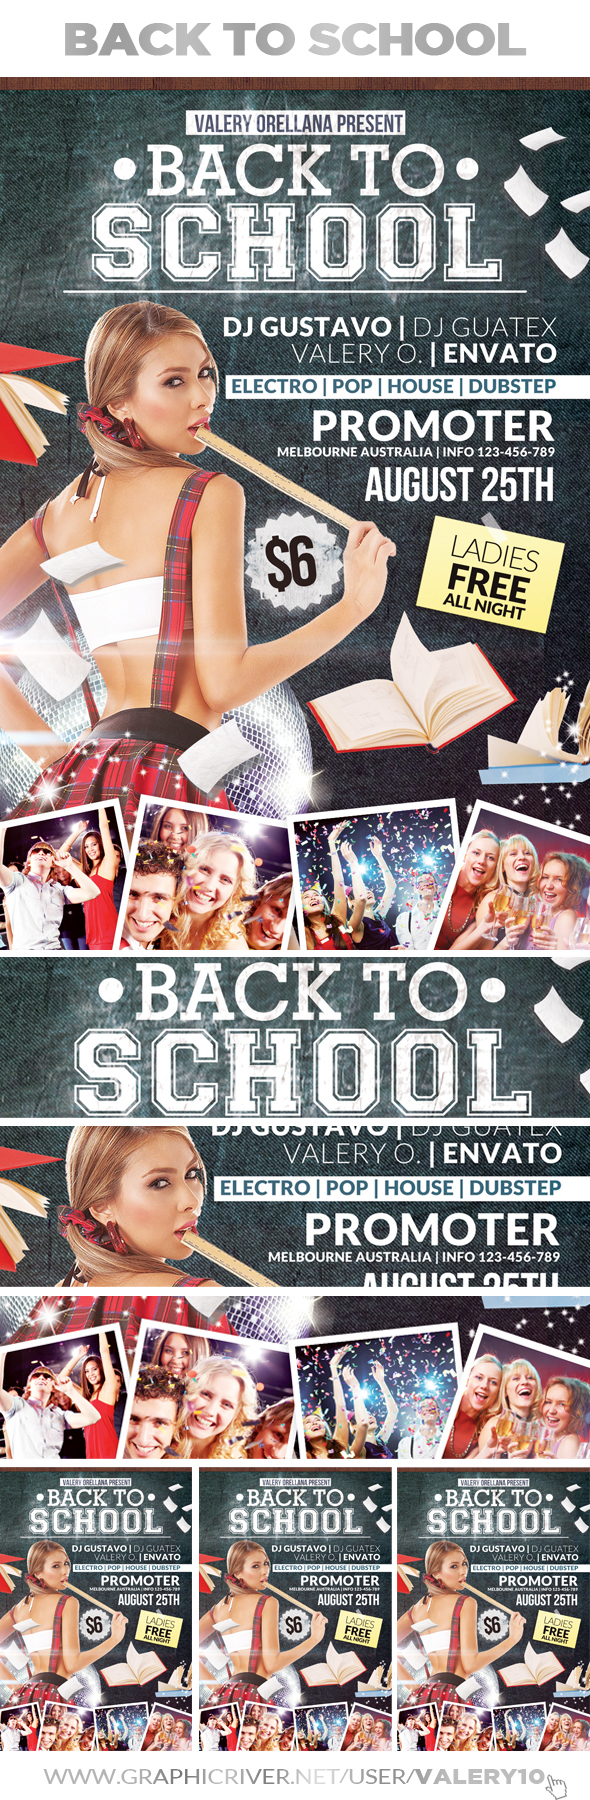 back to school flyer template on behance